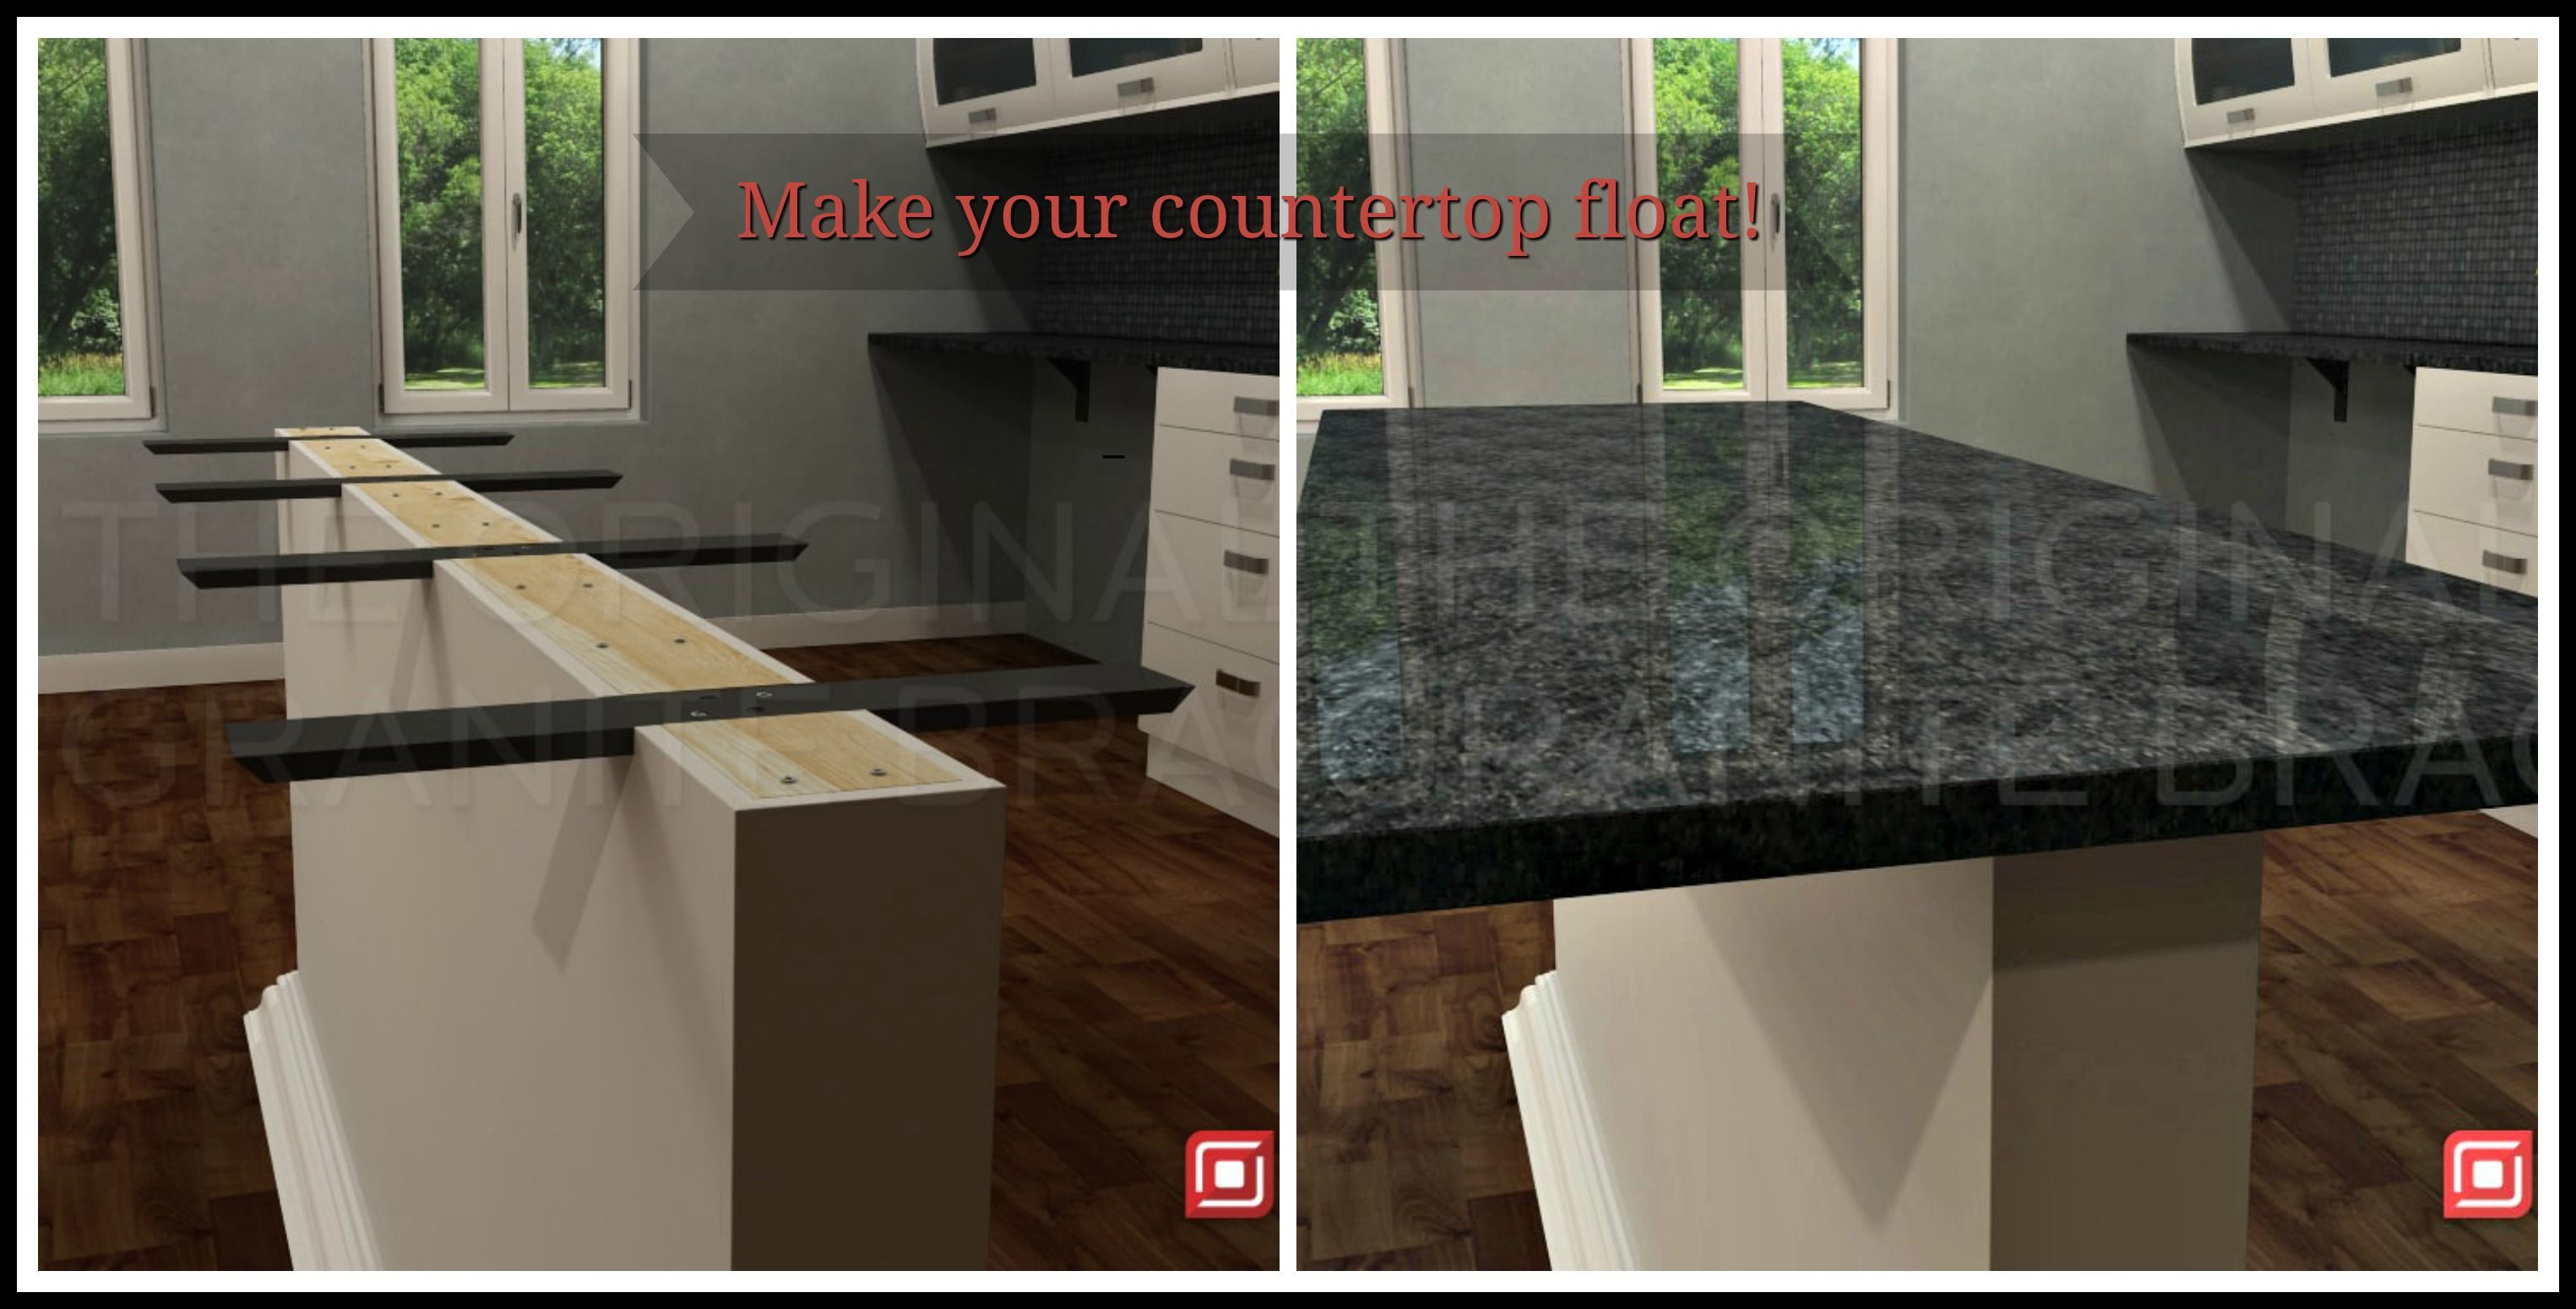 butcher woodrtops depot countertop sale granite home rustic learn for corbels used block care click ikea kitchen clean ideas cost bathroomops to countertops stunning wood here how canada